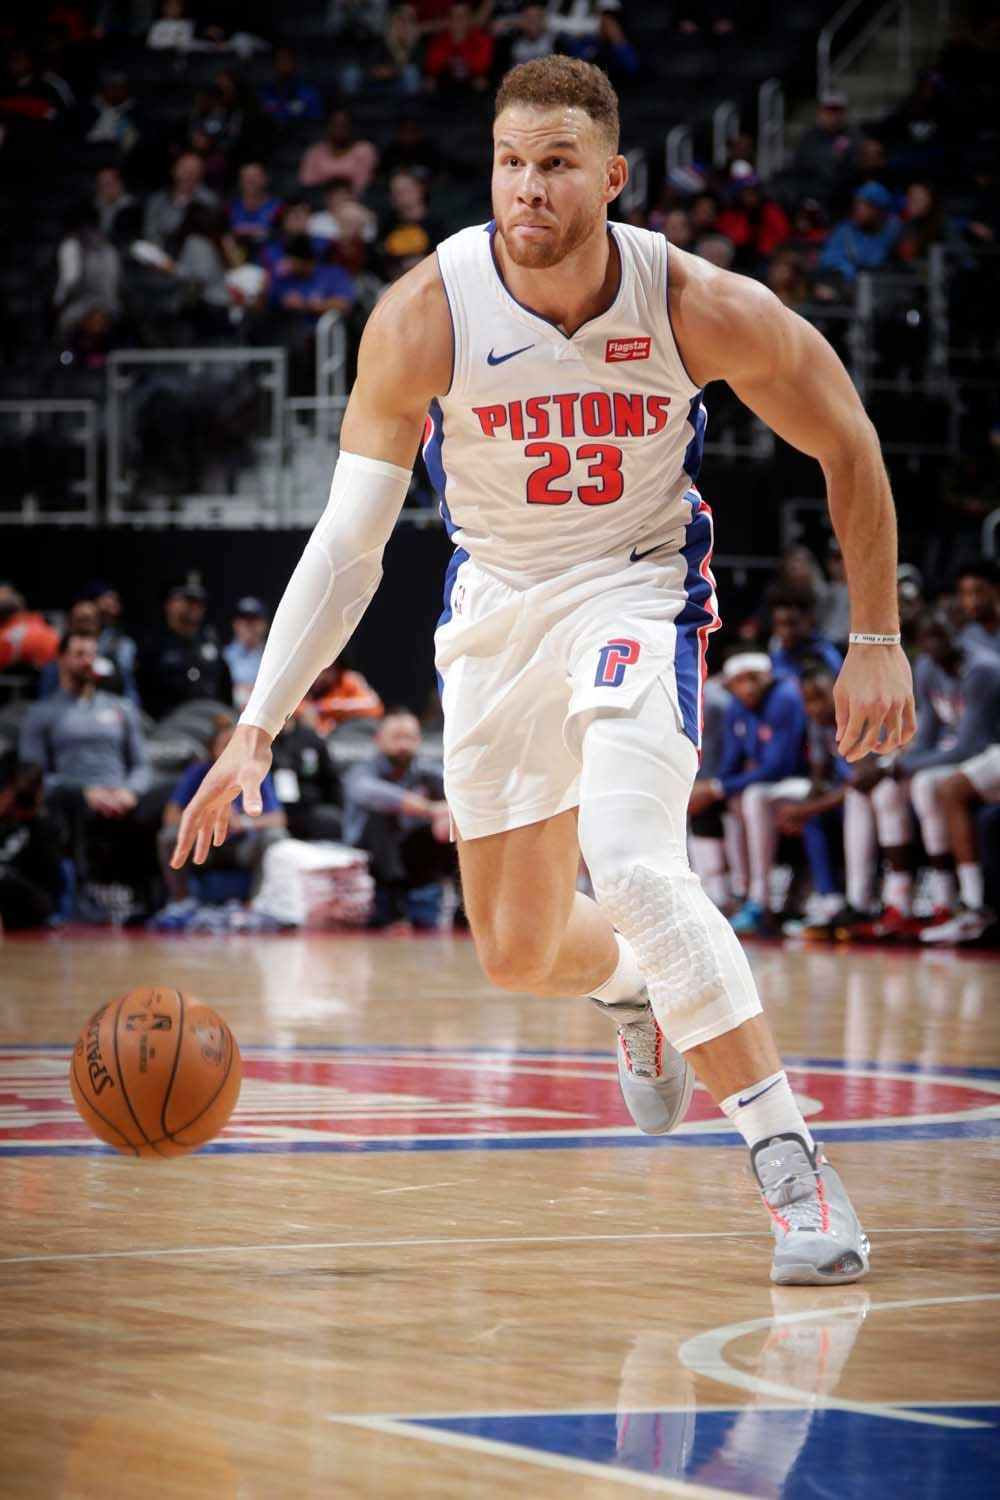 La Clippers Trade Blake Griffin To Detroit Pistons Jan 29 2018 Blake Griffin Detroit Pistons Lebron James Kobe Bryant